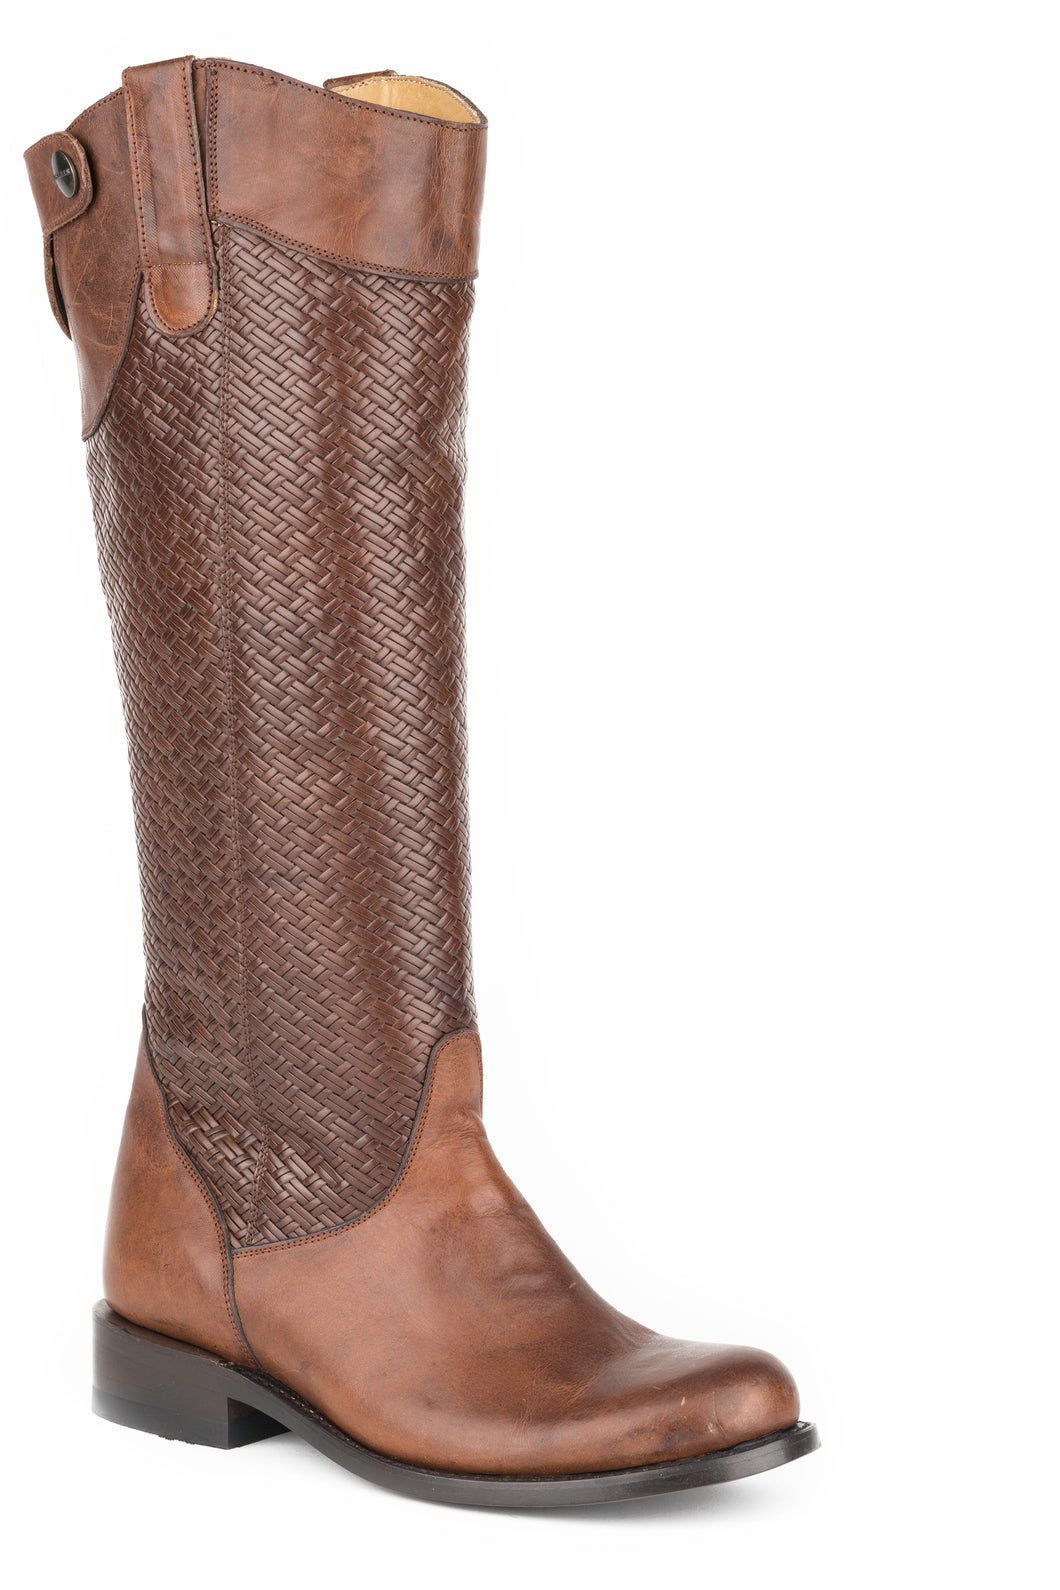 Chelsea Boot Womens Boot Brown Vamp And Basket Weave 16